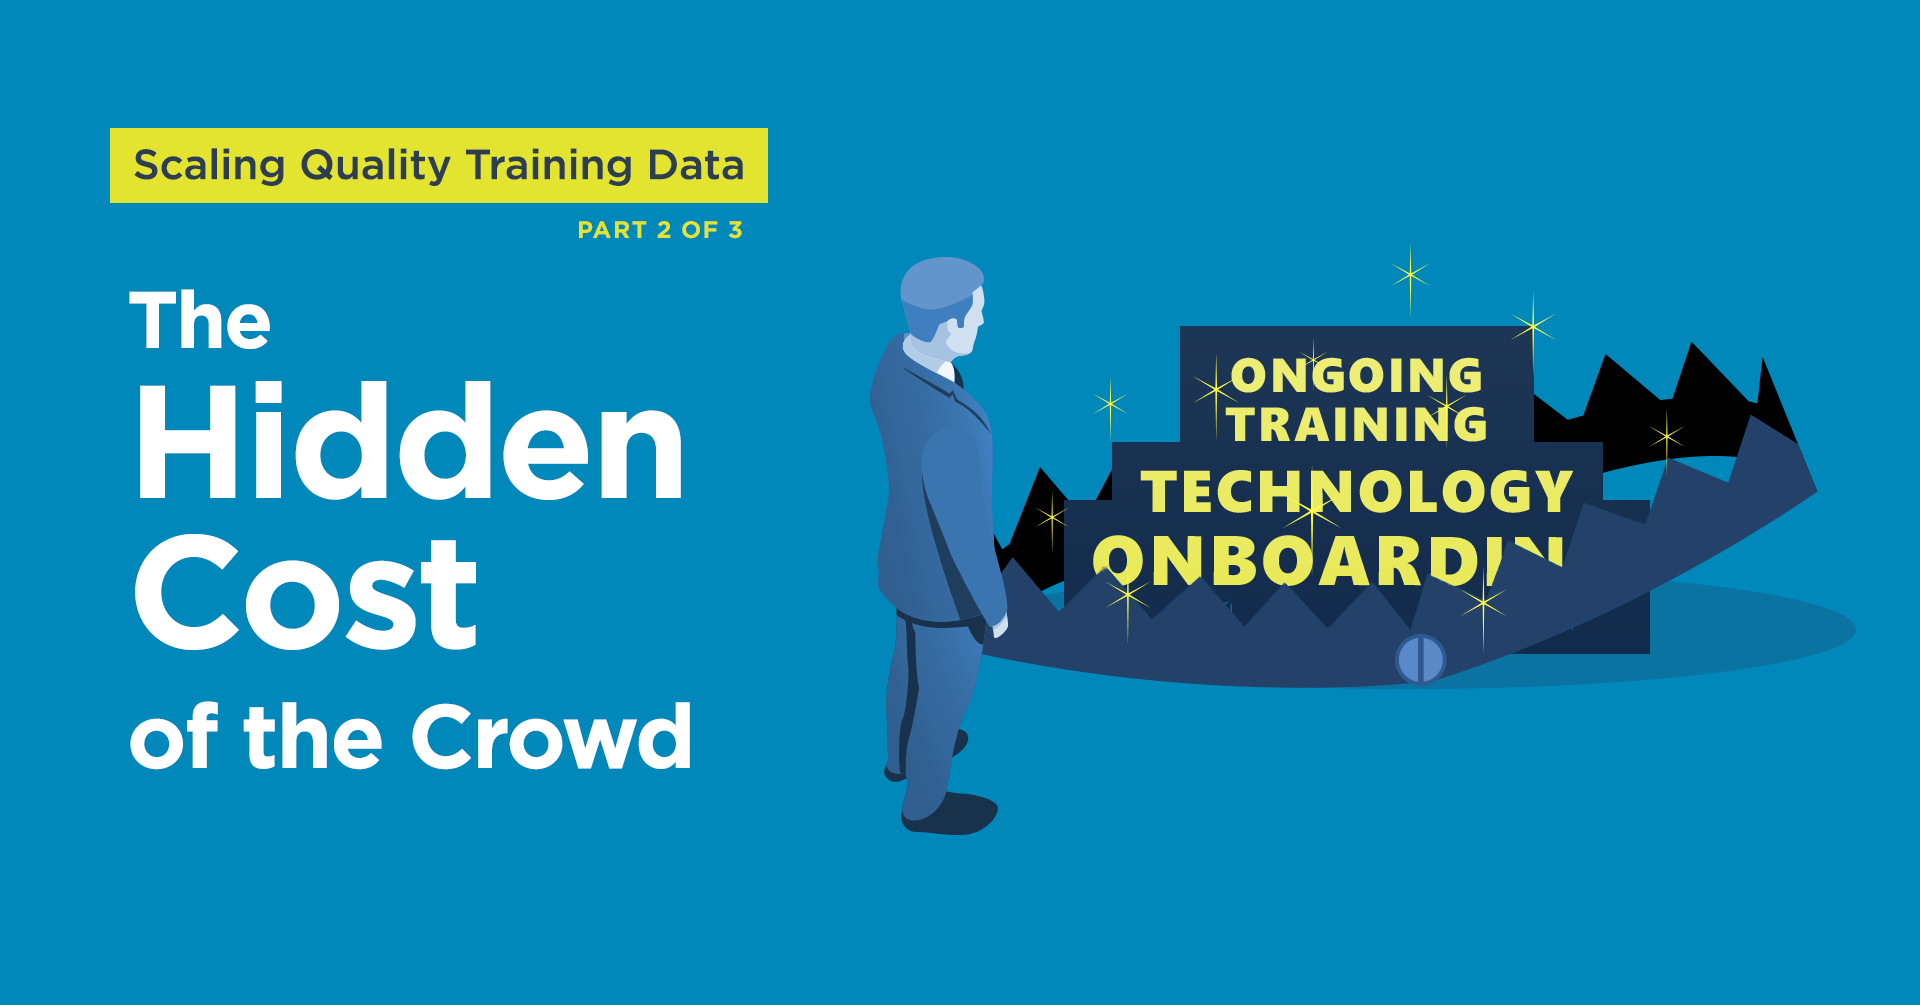 The Hidden Costs of Crowd is the second part in our 3 part series on Scaling Quality Training Data. In this image, a man looks at the trap that is crowdsourcing.